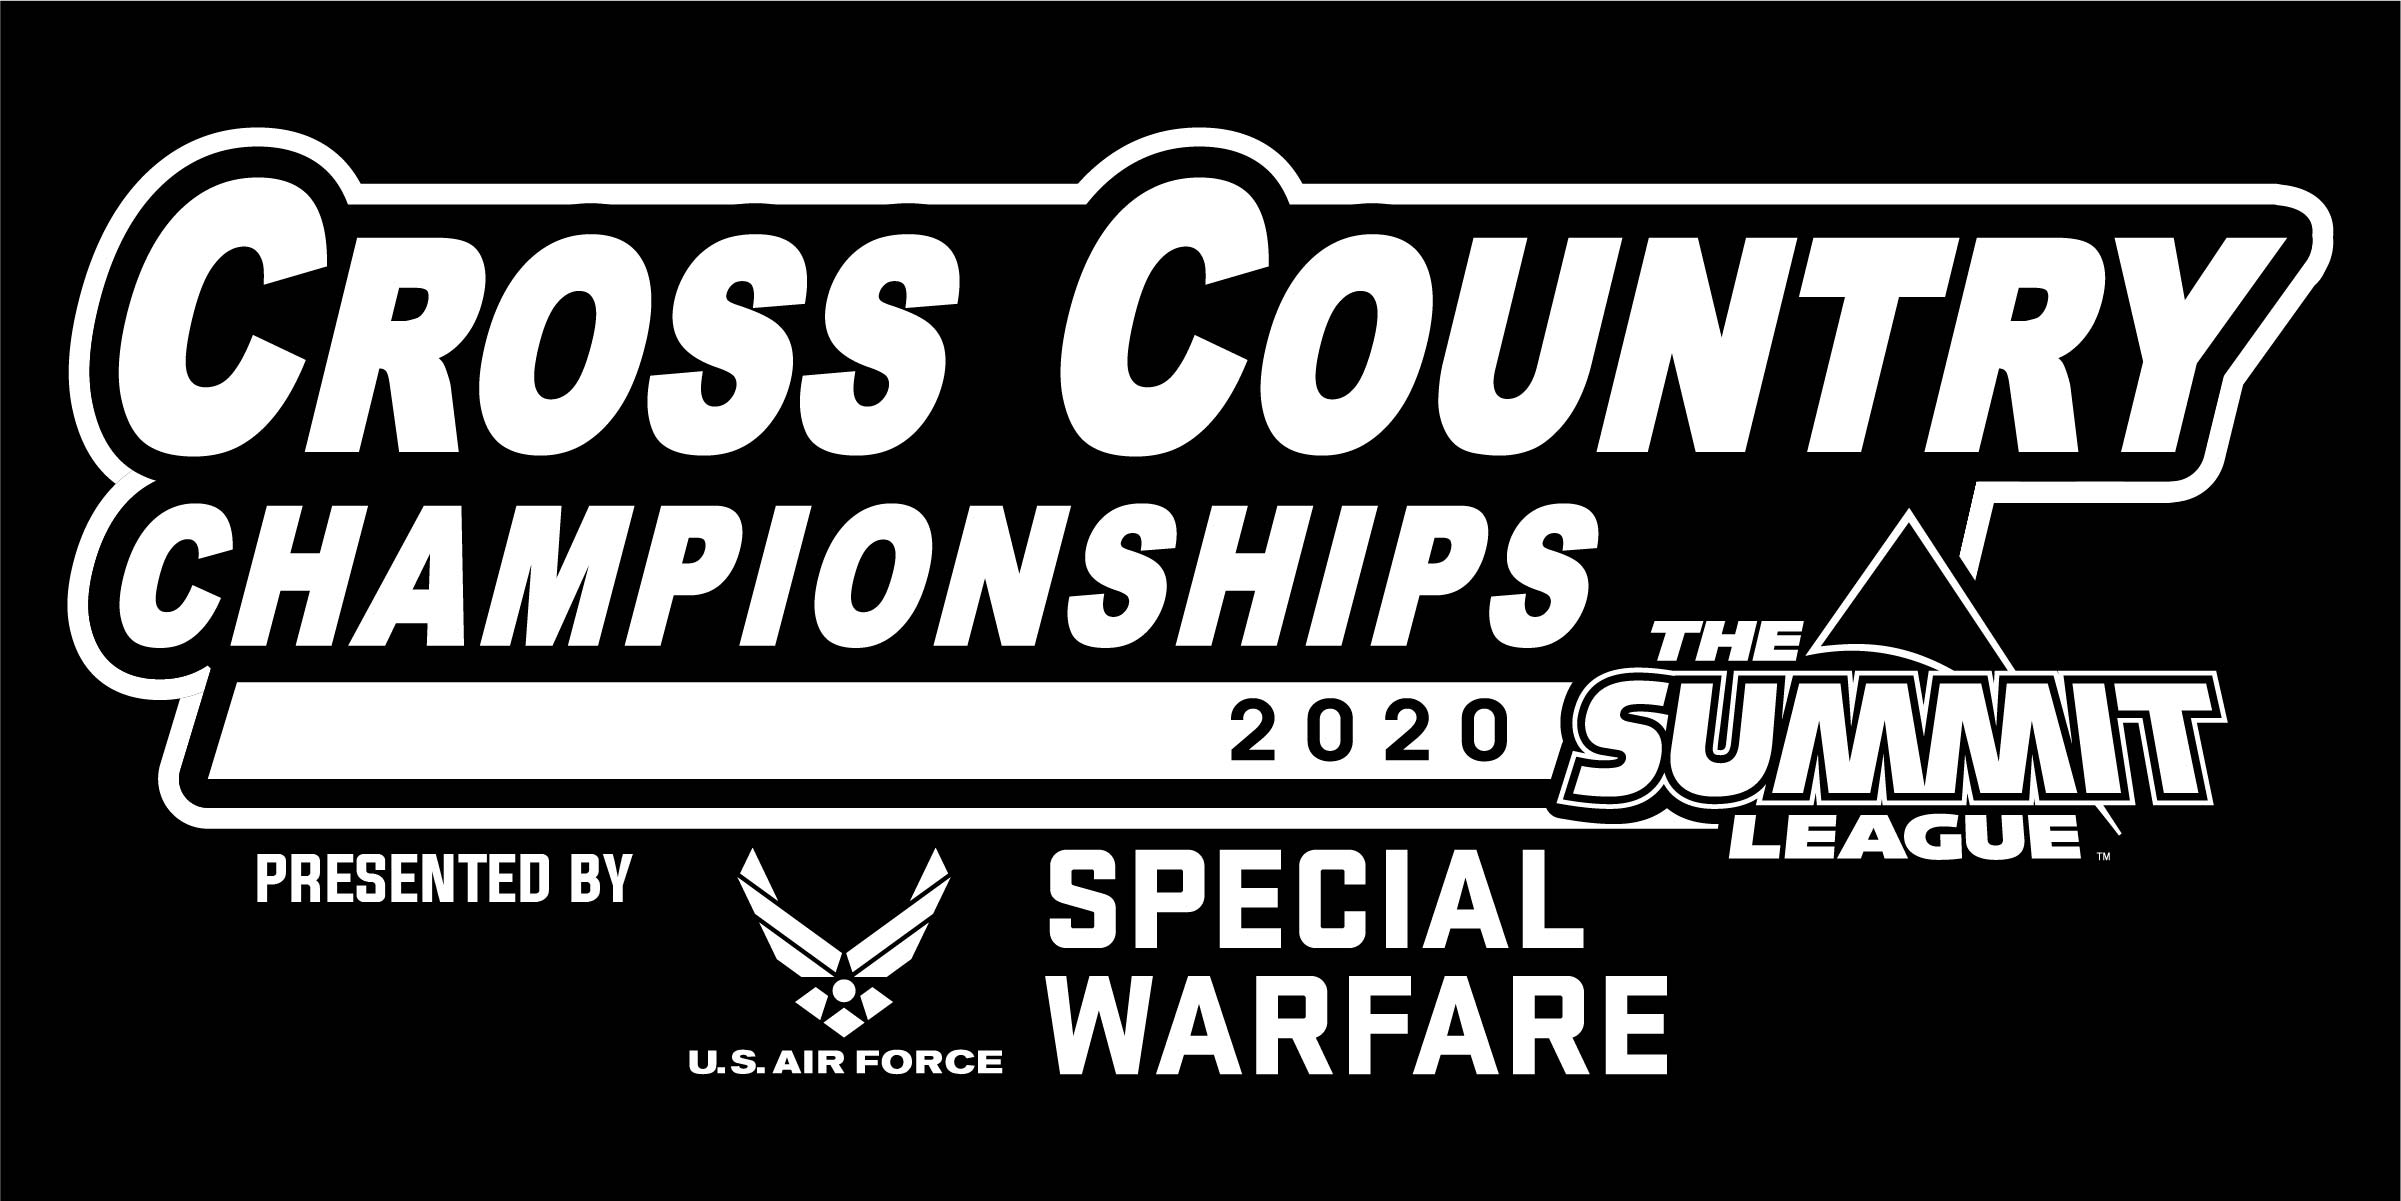 2020 Summit League Cross Country Championships